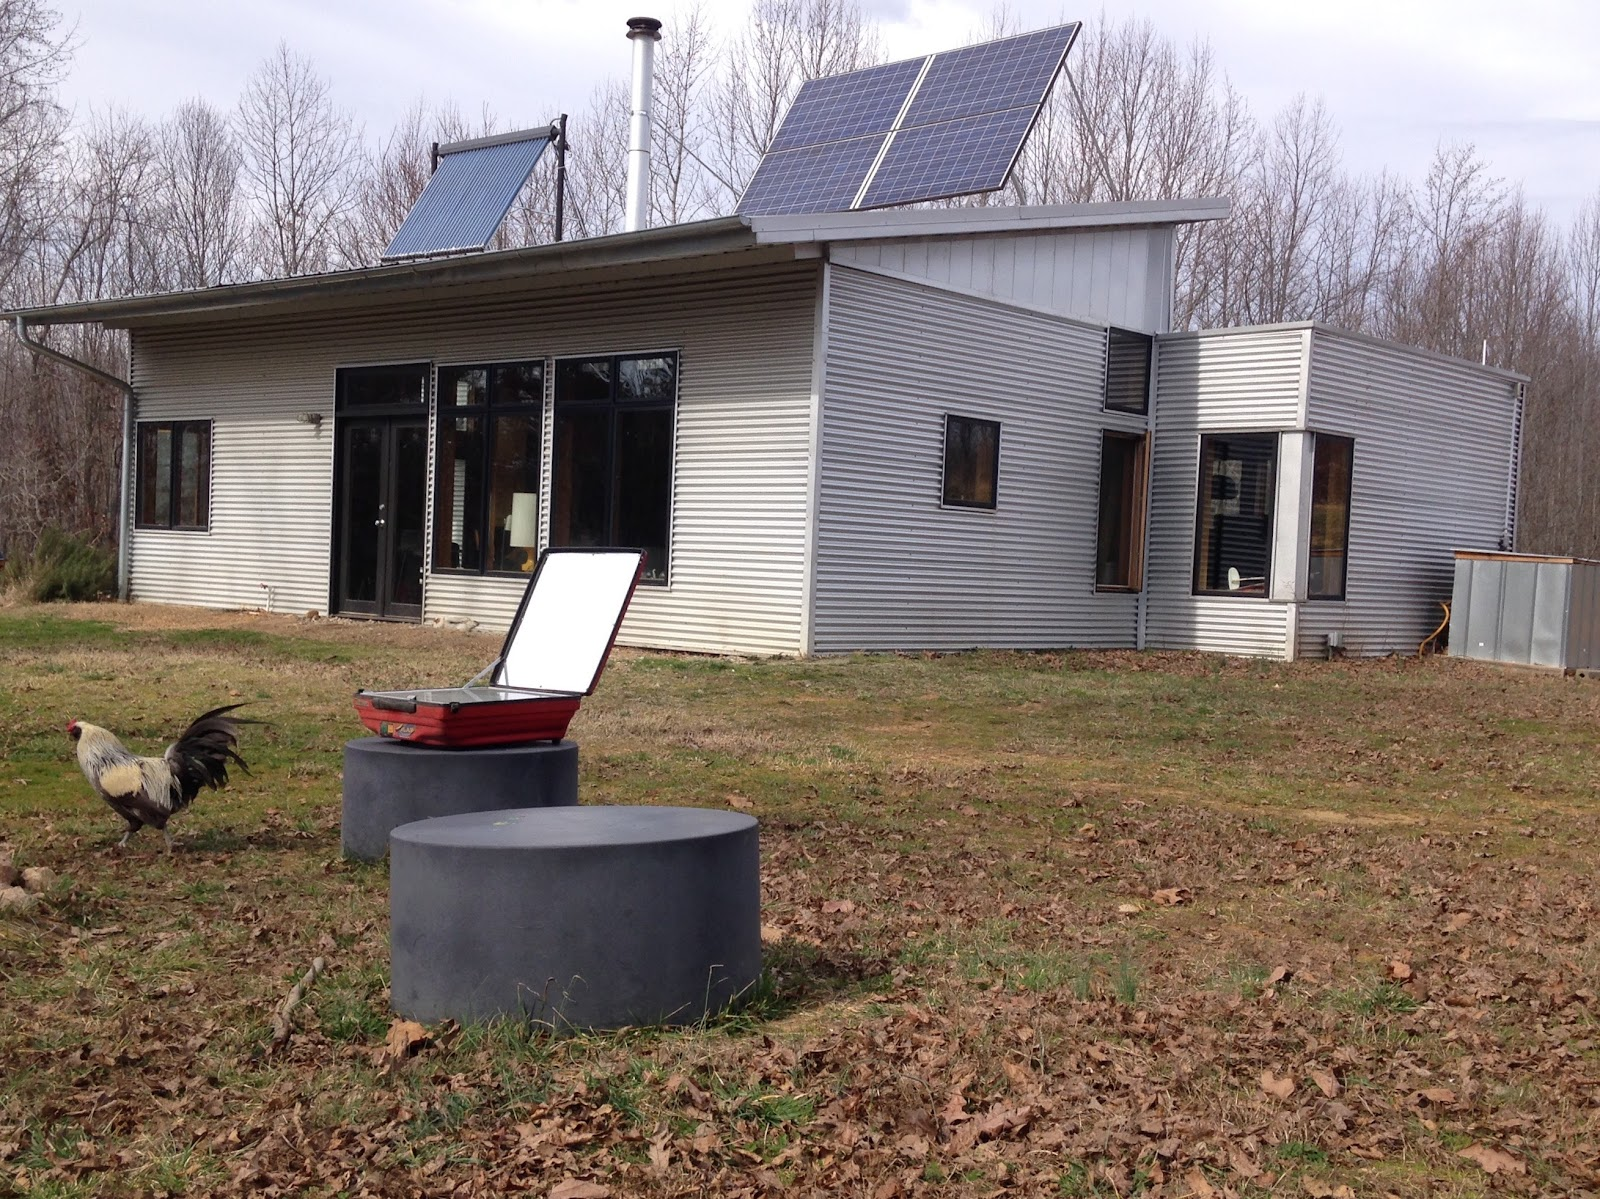 Modern Off Grid Prefab House And Homestead Hits High Temps ...